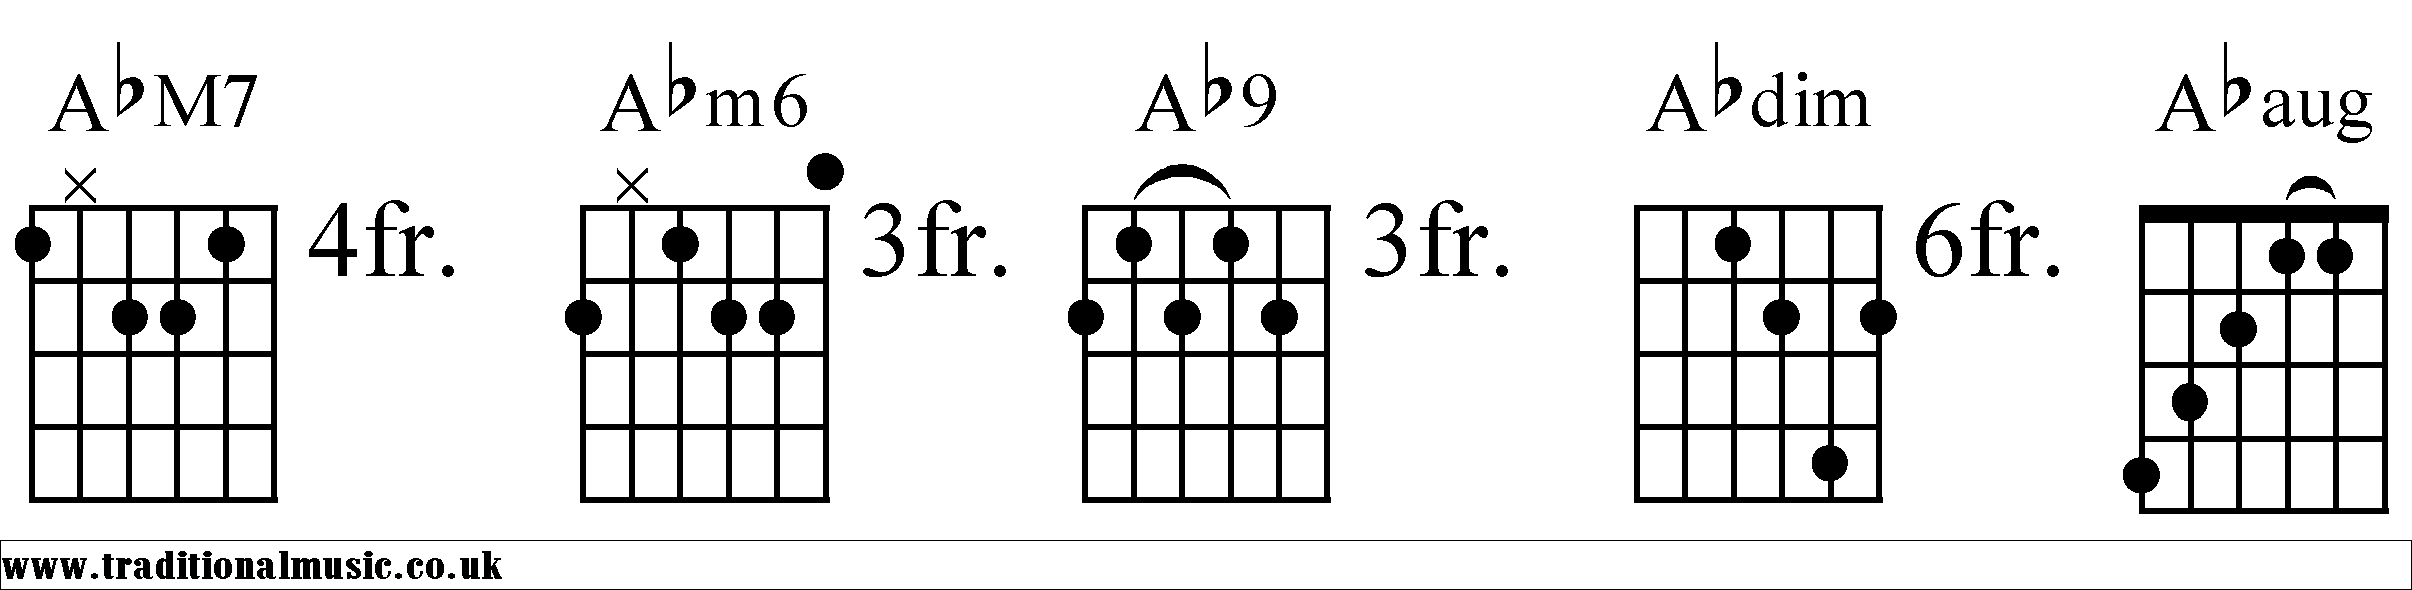 Chords For Guitar Ab